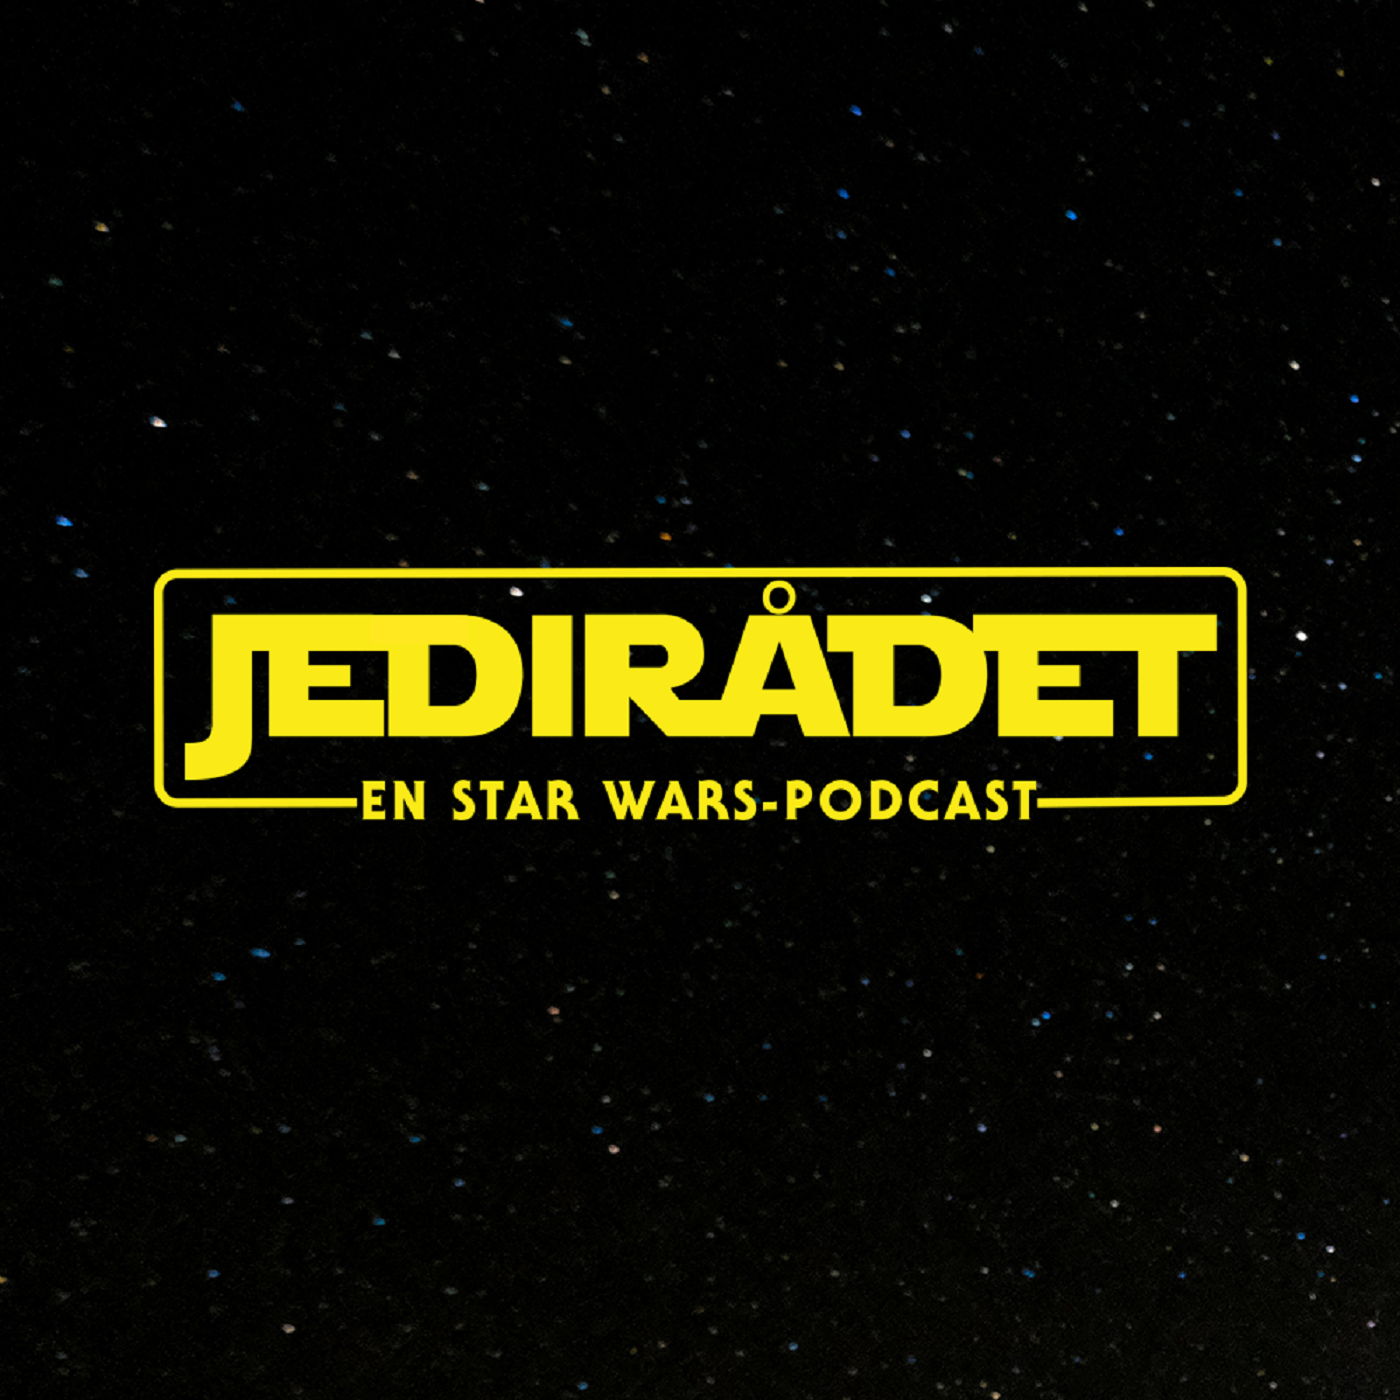 Jedirådet - En Star Wars-podcast